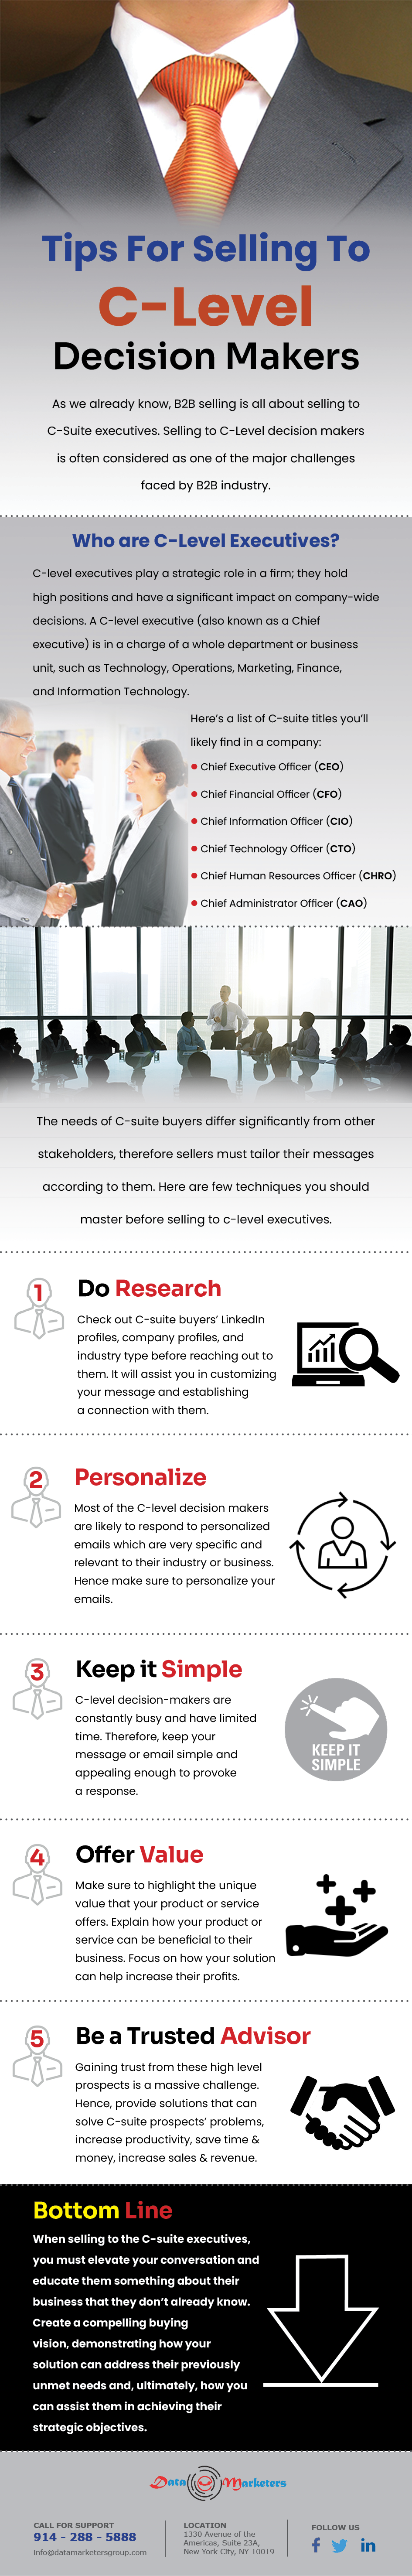 Tips For Selling C Level Decision Makers | Data Marketers Group